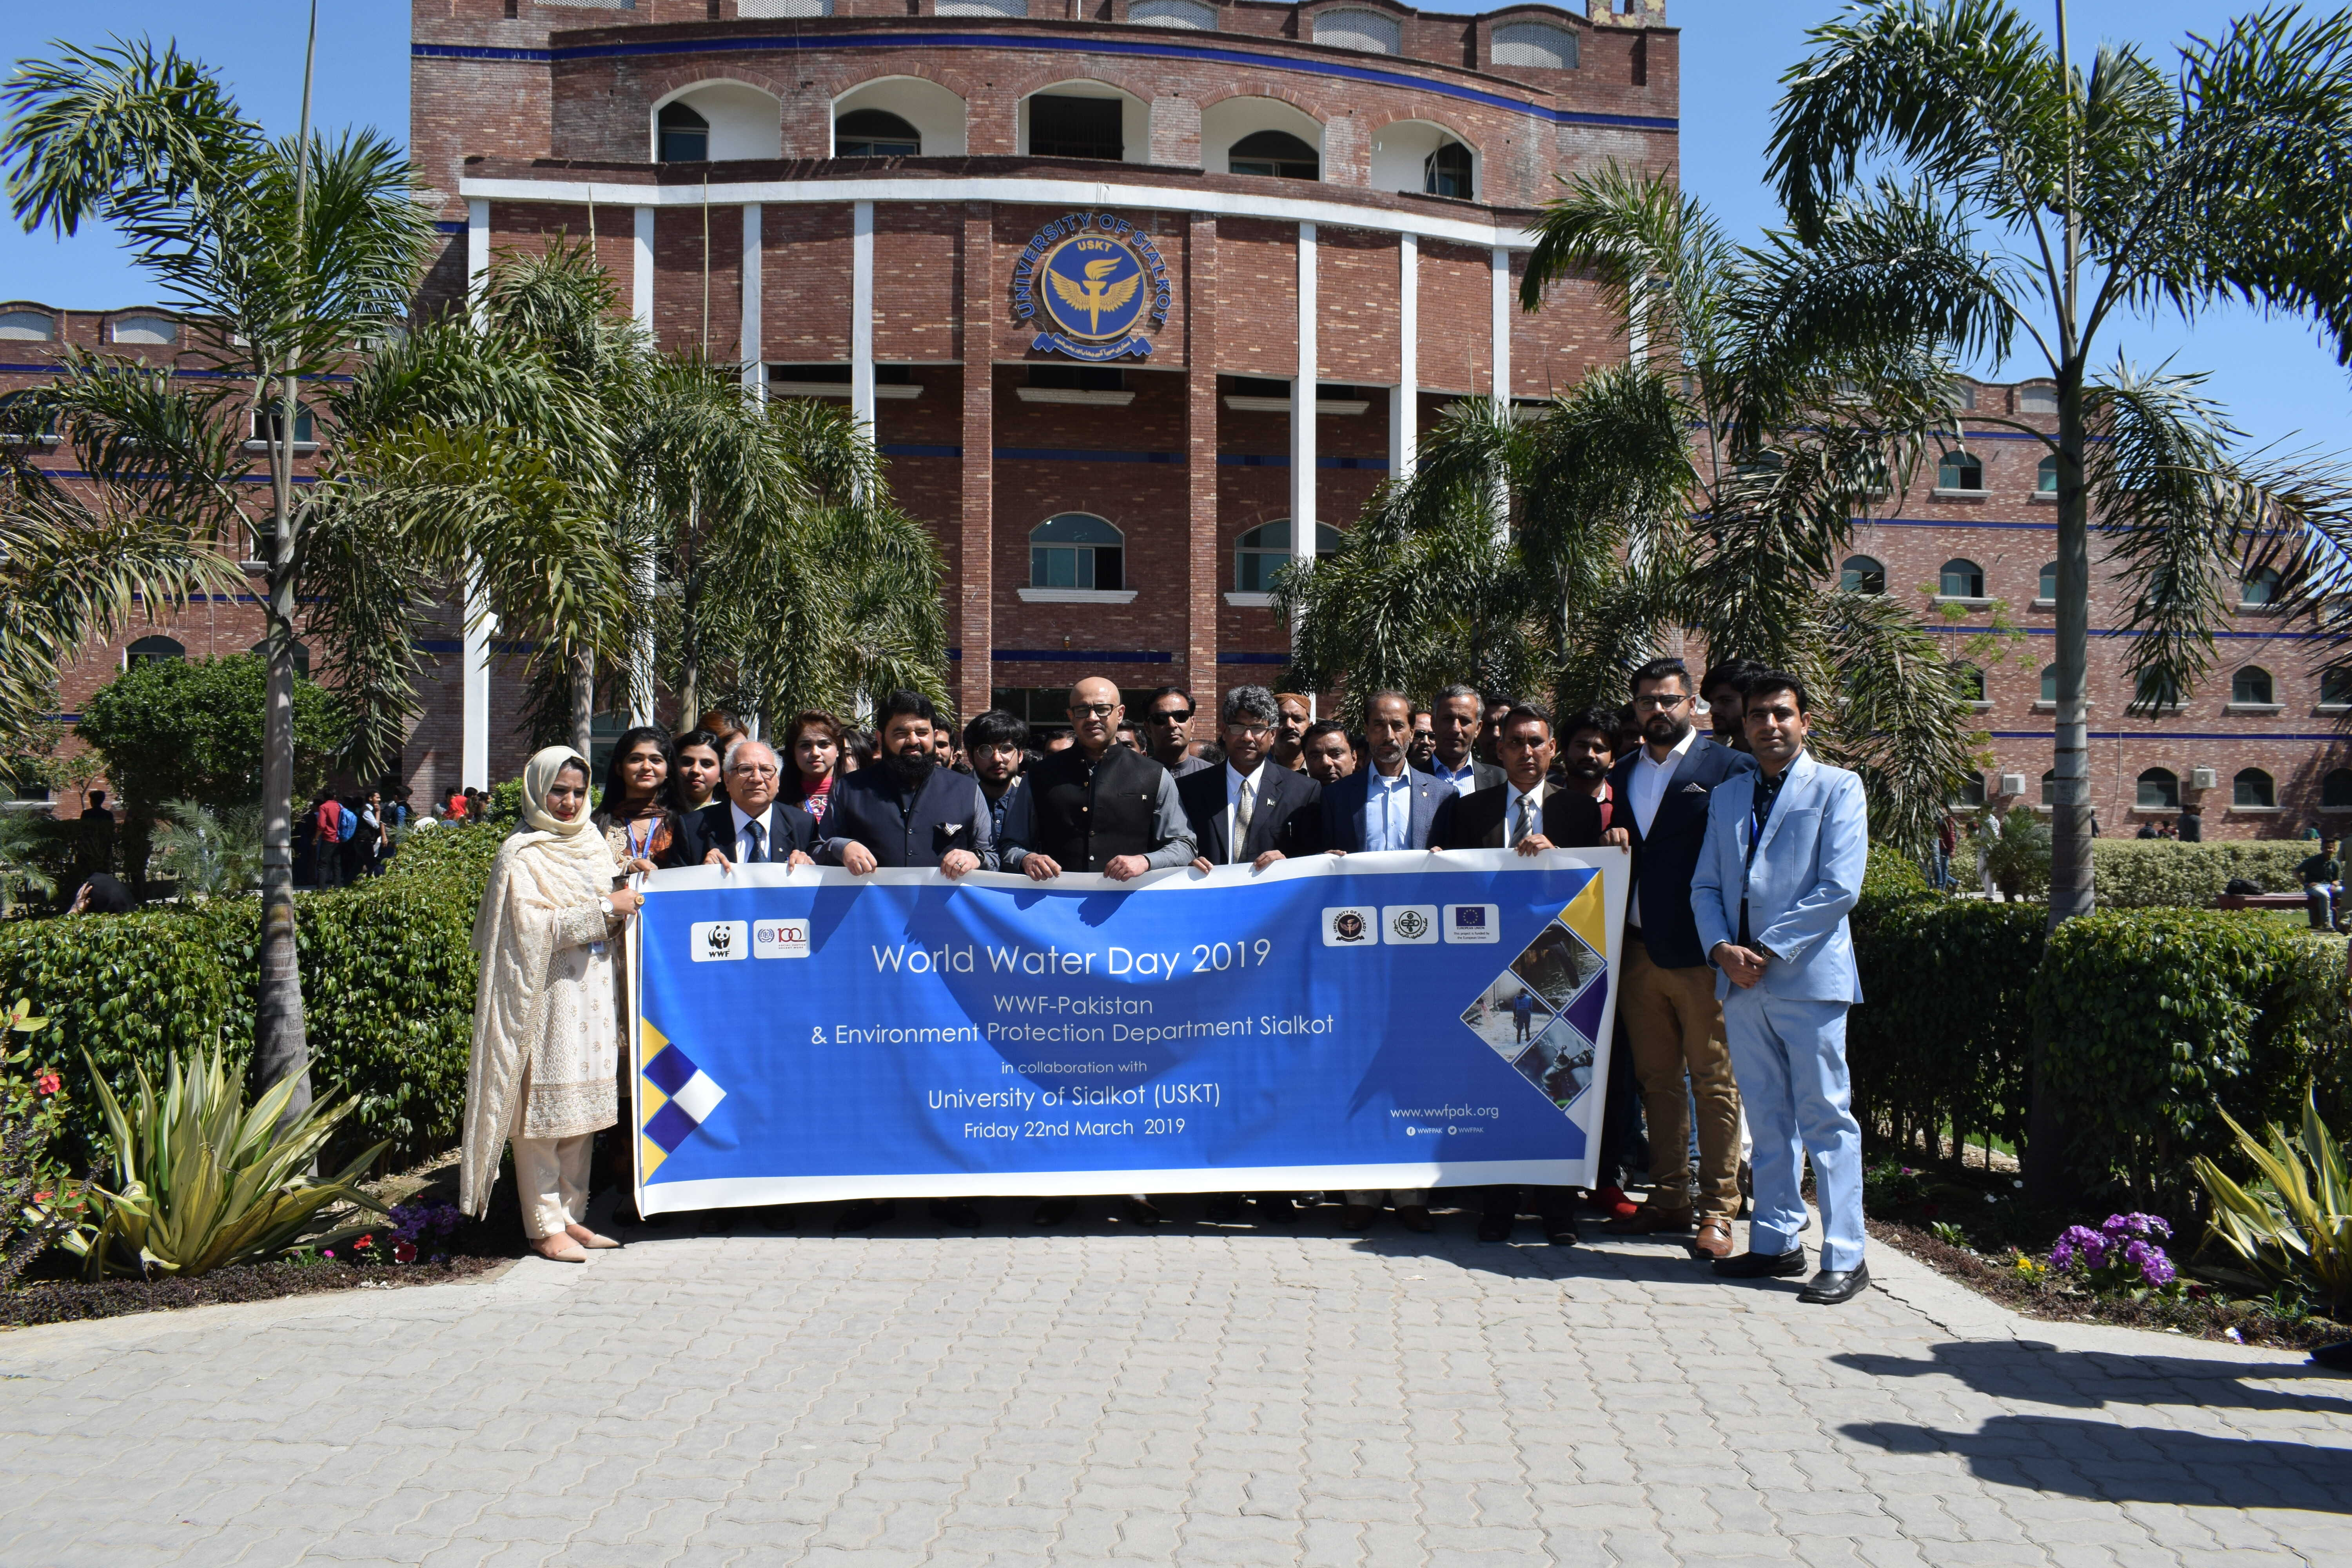 University of Sialkot organized a seminar on the topic of Water crises and Environmental Protection to highlights the water problems in Pakistan. Mr. Rizwan (Minister of environmental protection, Punjab) and Mr. Adeel (senior officer of WWF Pakistan) were the Chief Guests of this event.